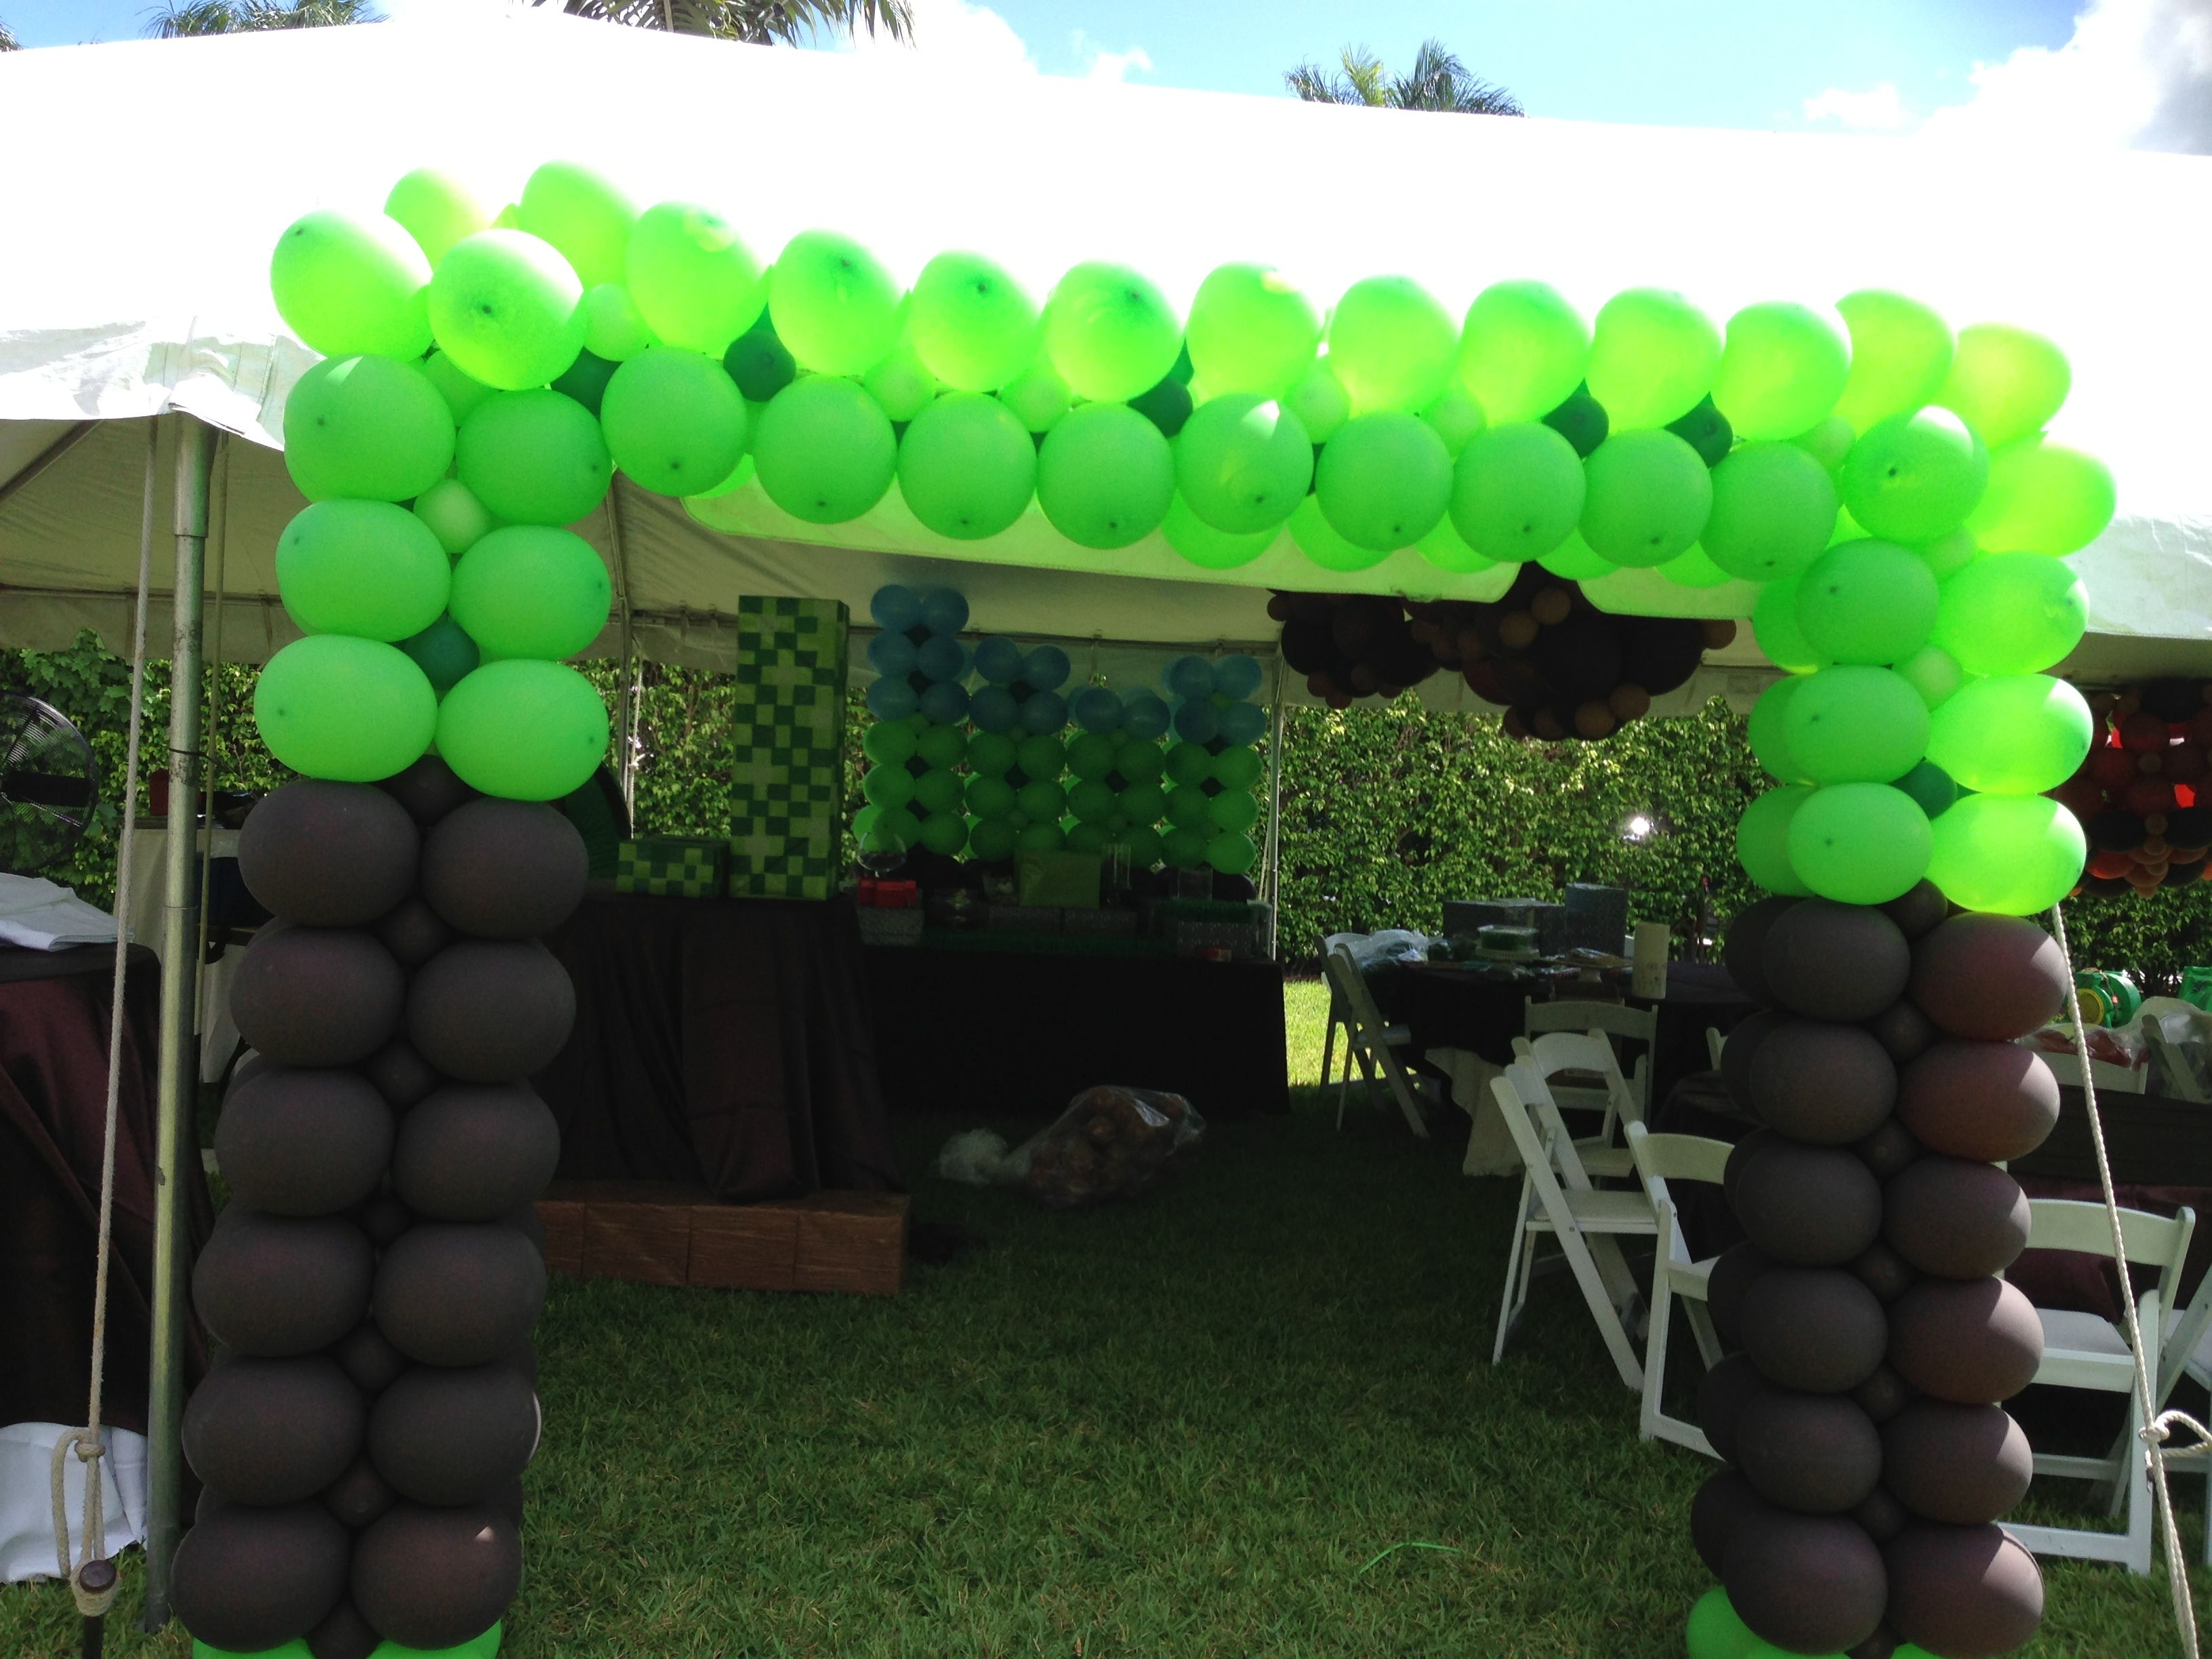 Minecraft Theme party  Balloon Arch  www dreamarkevents com